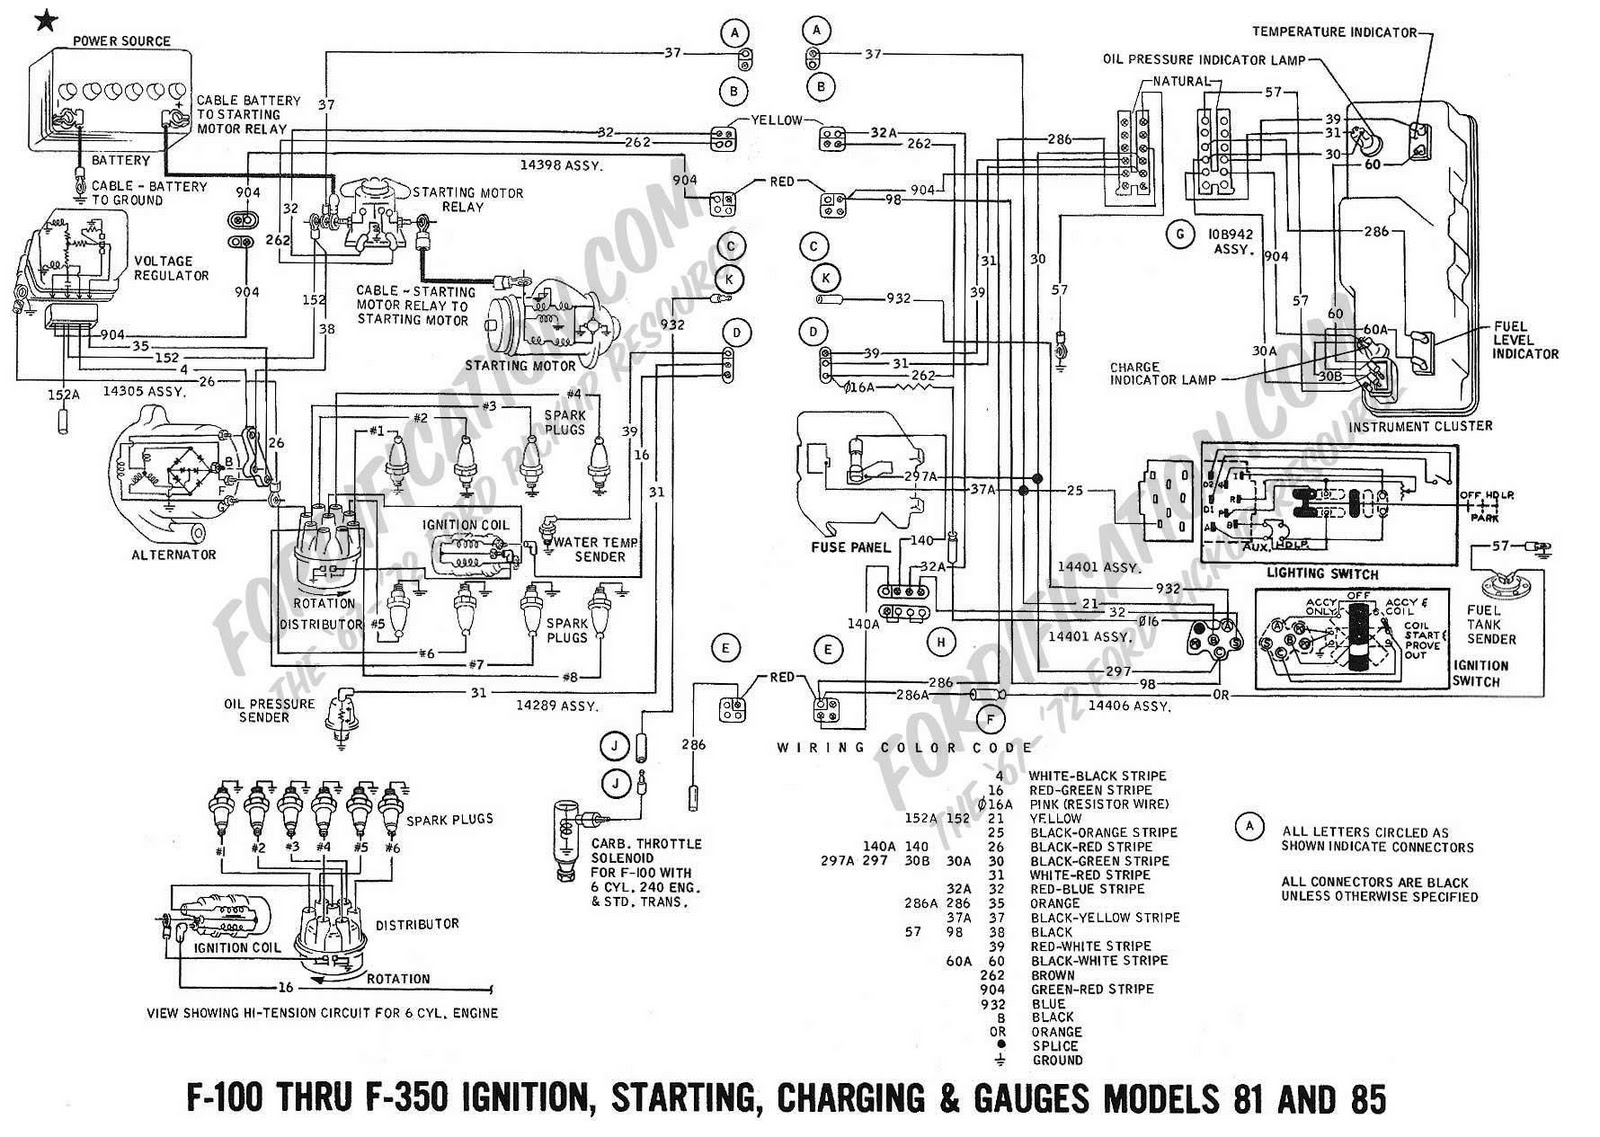 ford truck wiring harness wiring diagram todays ford voltage regulator wiring diagram ford truck wiring diagrams [ 1600 x 1137 Pixel ]